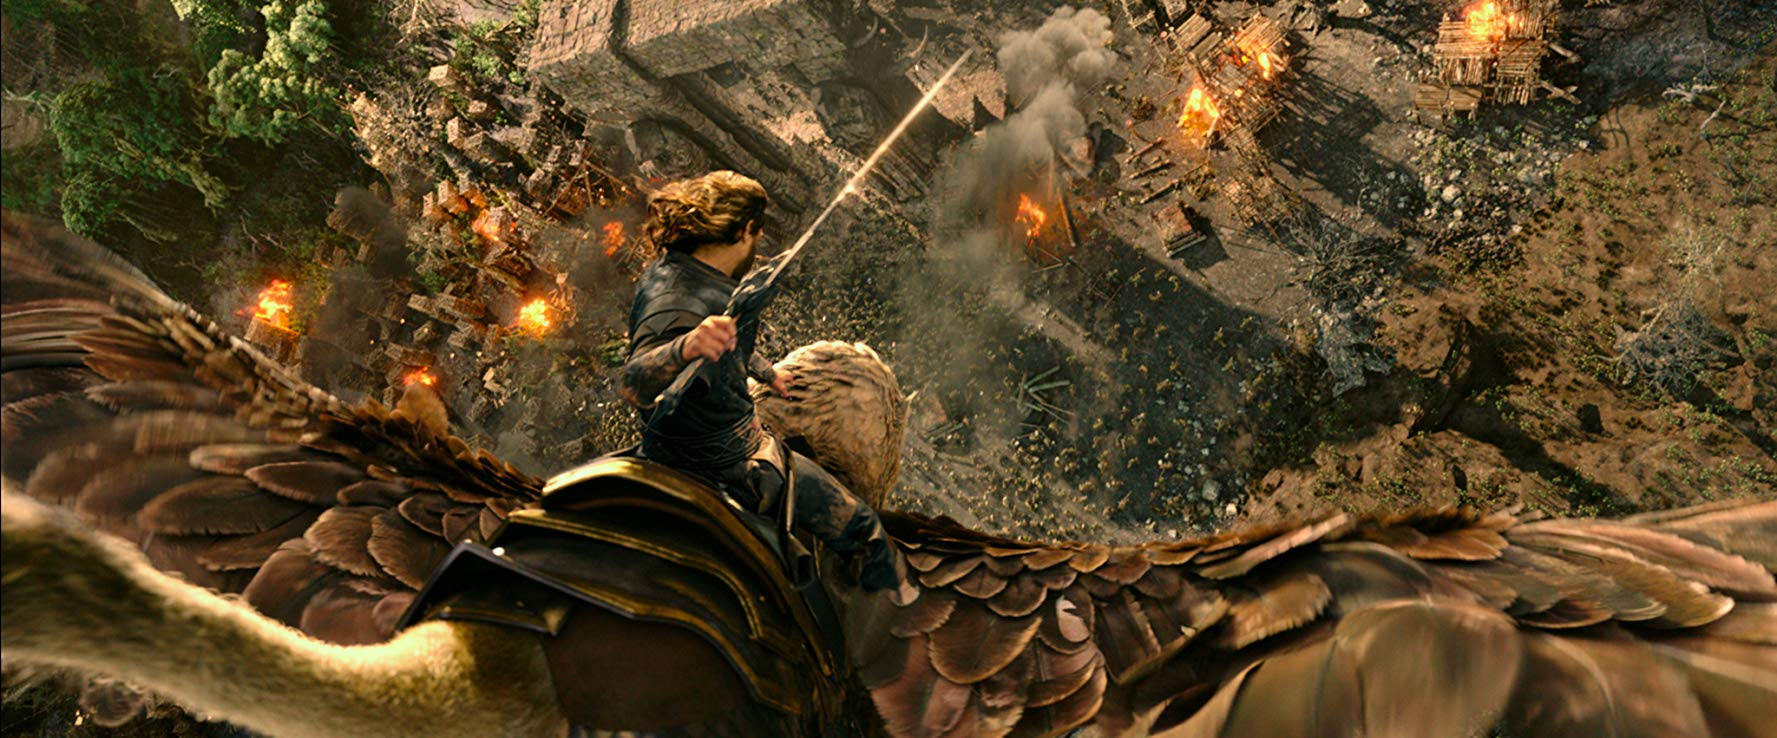 Travis Fimmel flies into action on the back of a gryphon in Warcraft (2016)